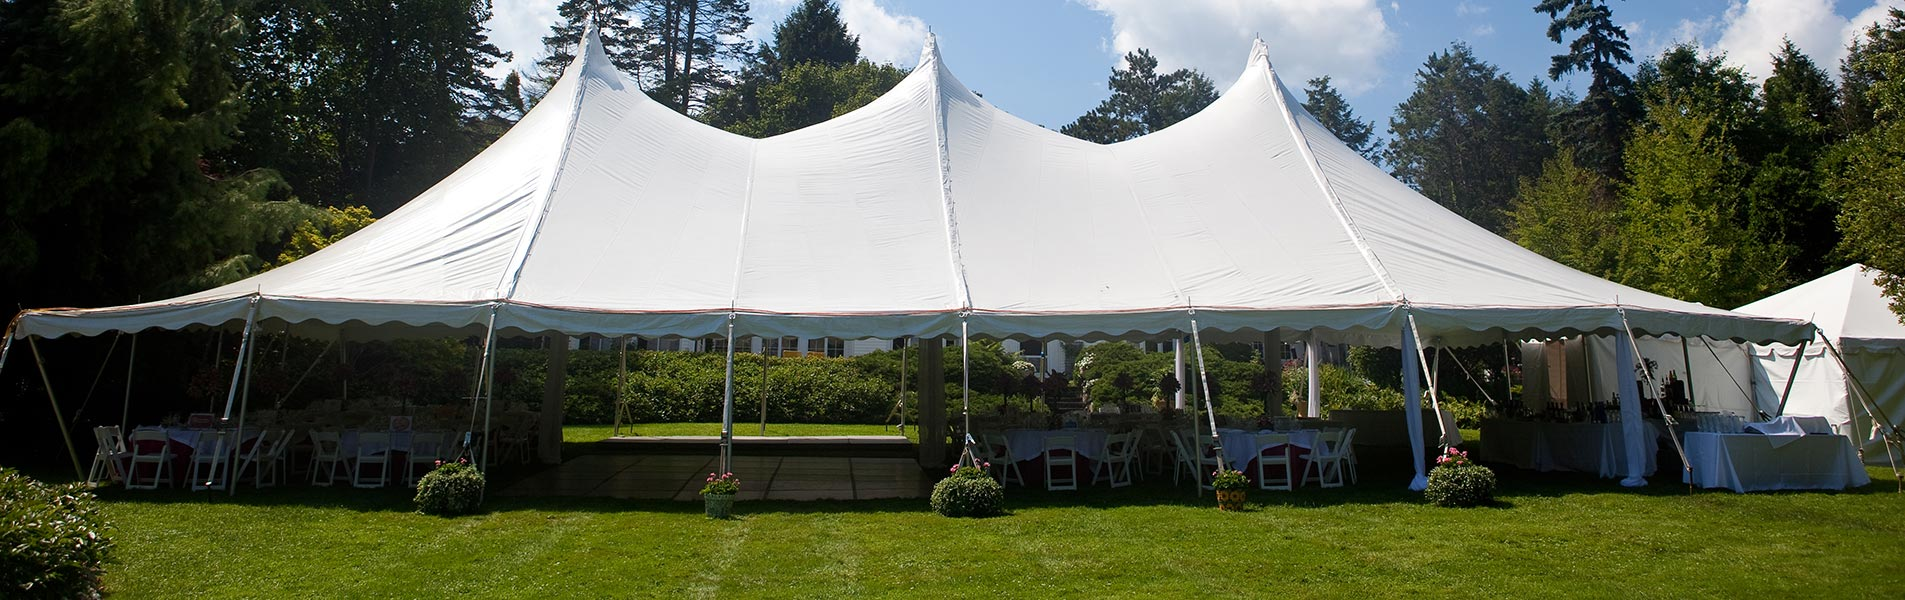 Modesto Tent And Awning